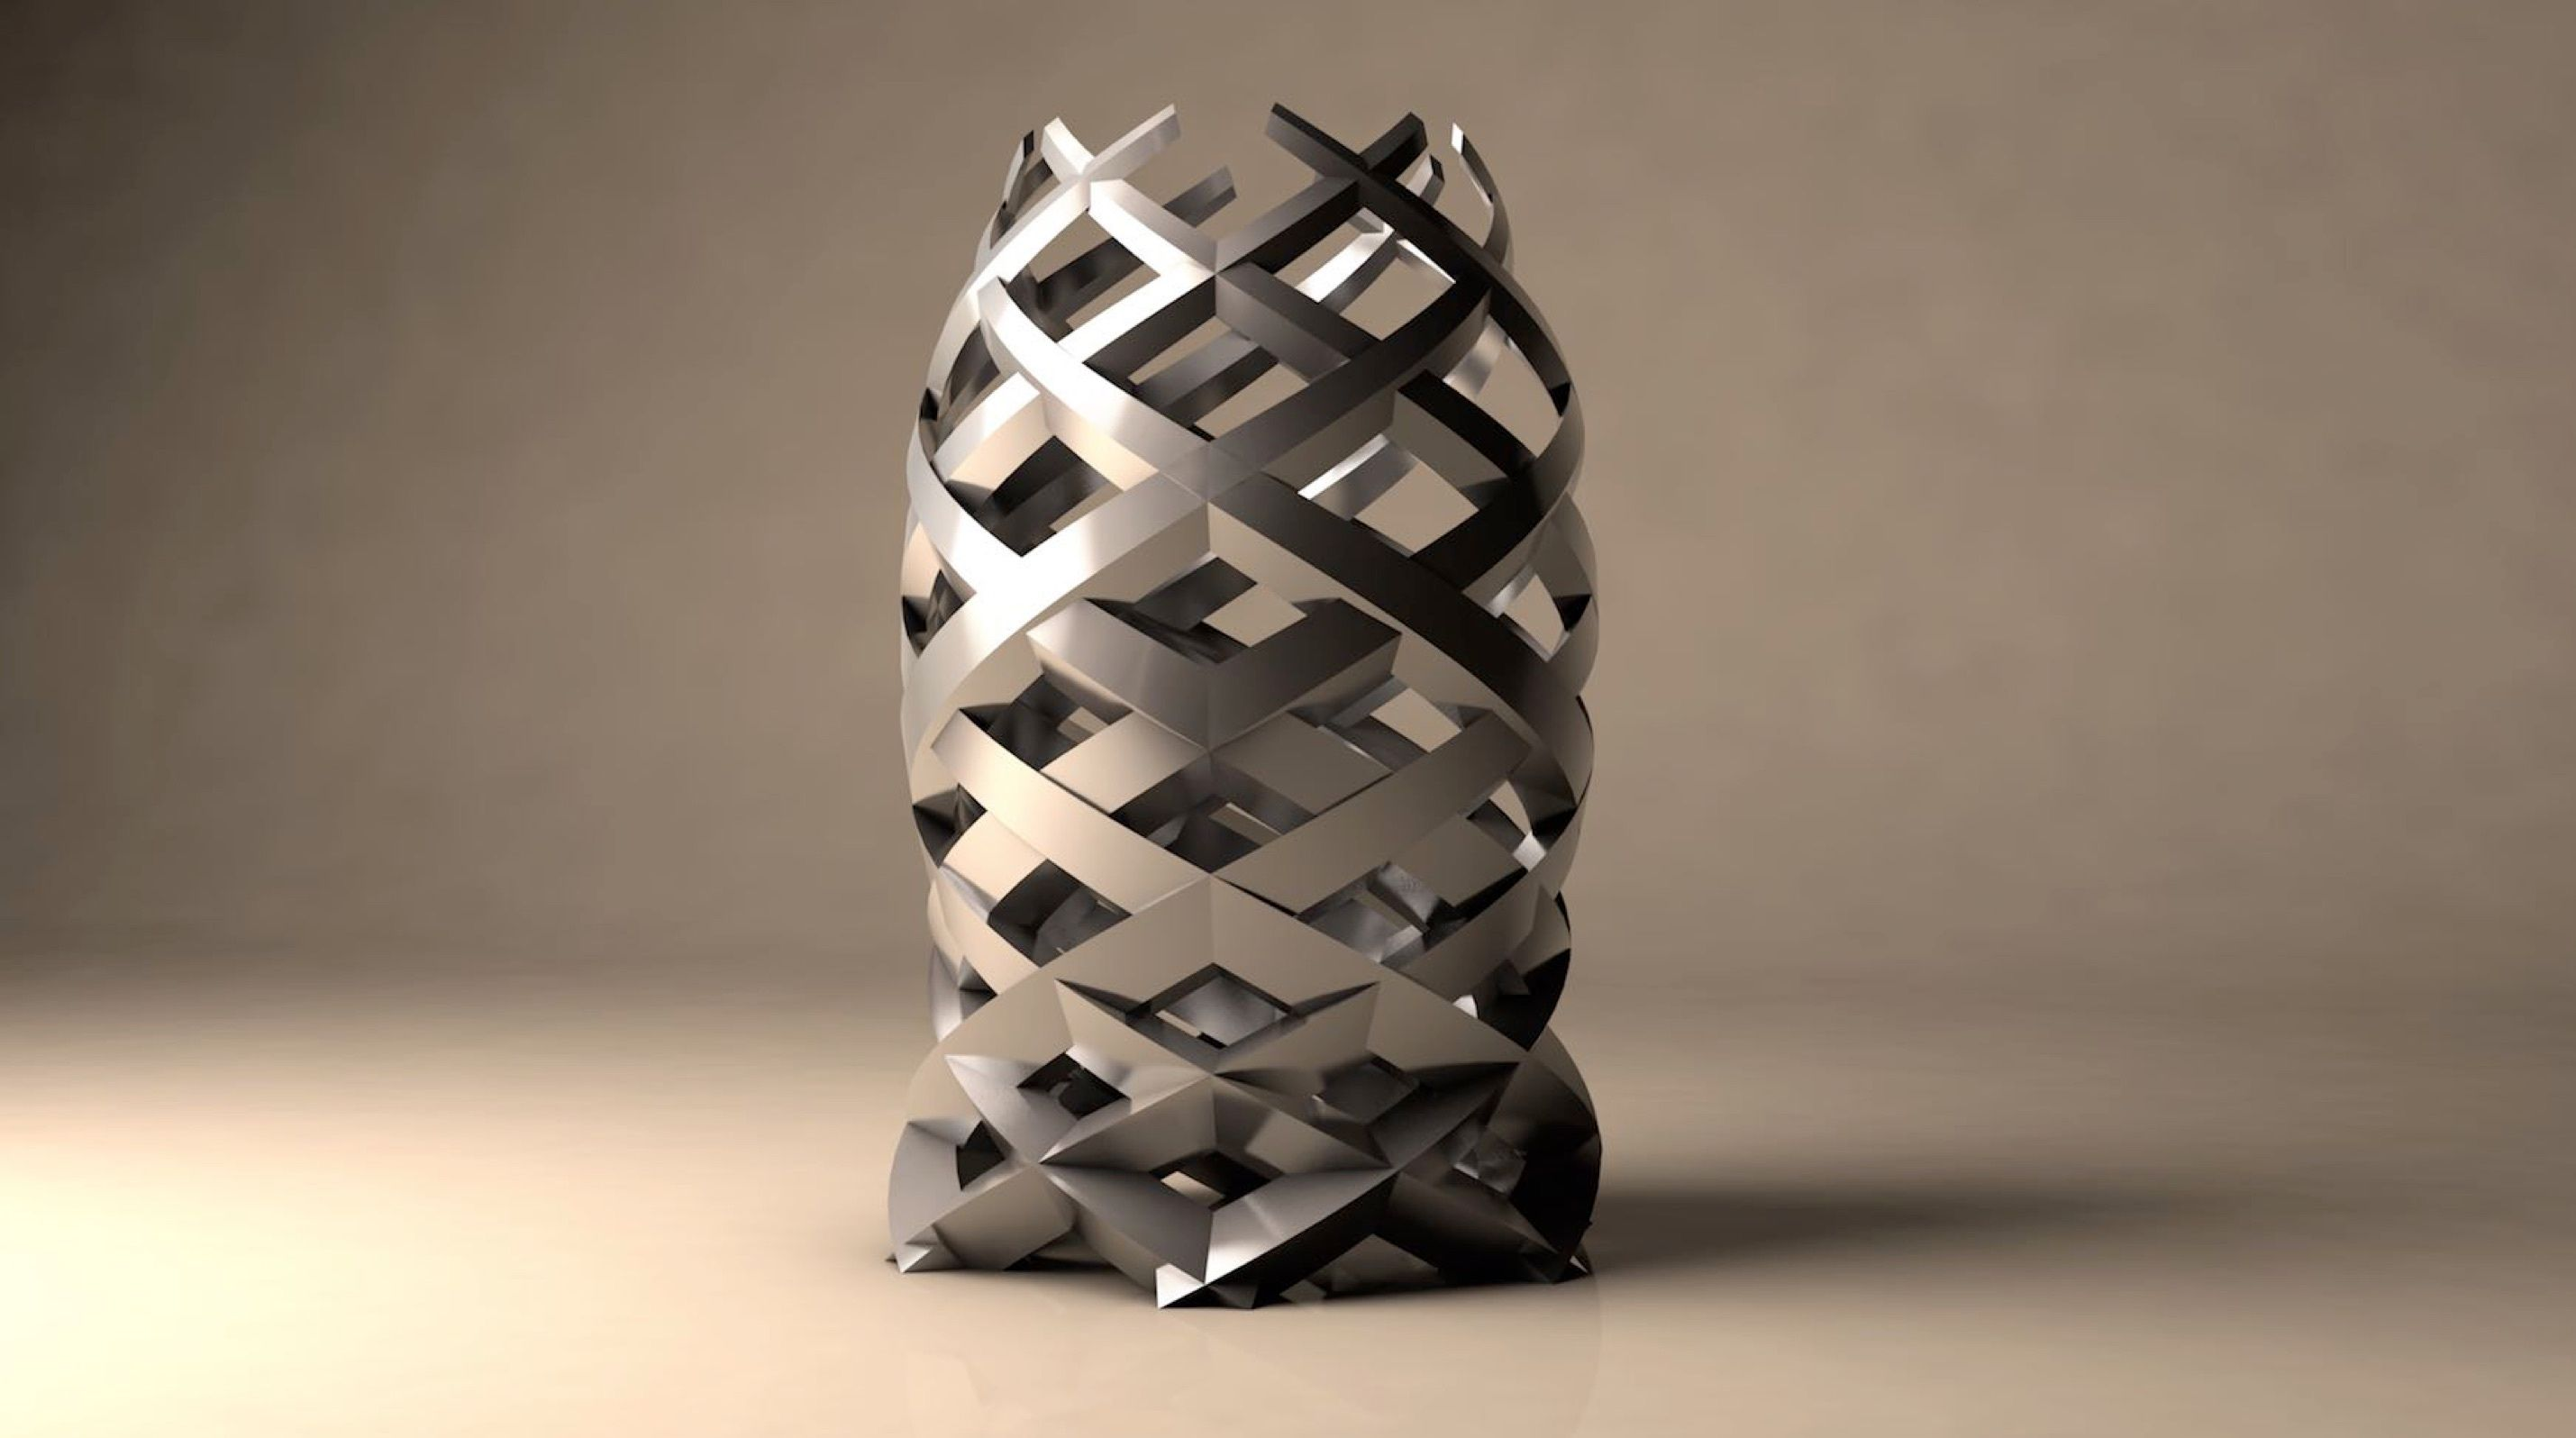 unique shape created with NURBS modeling